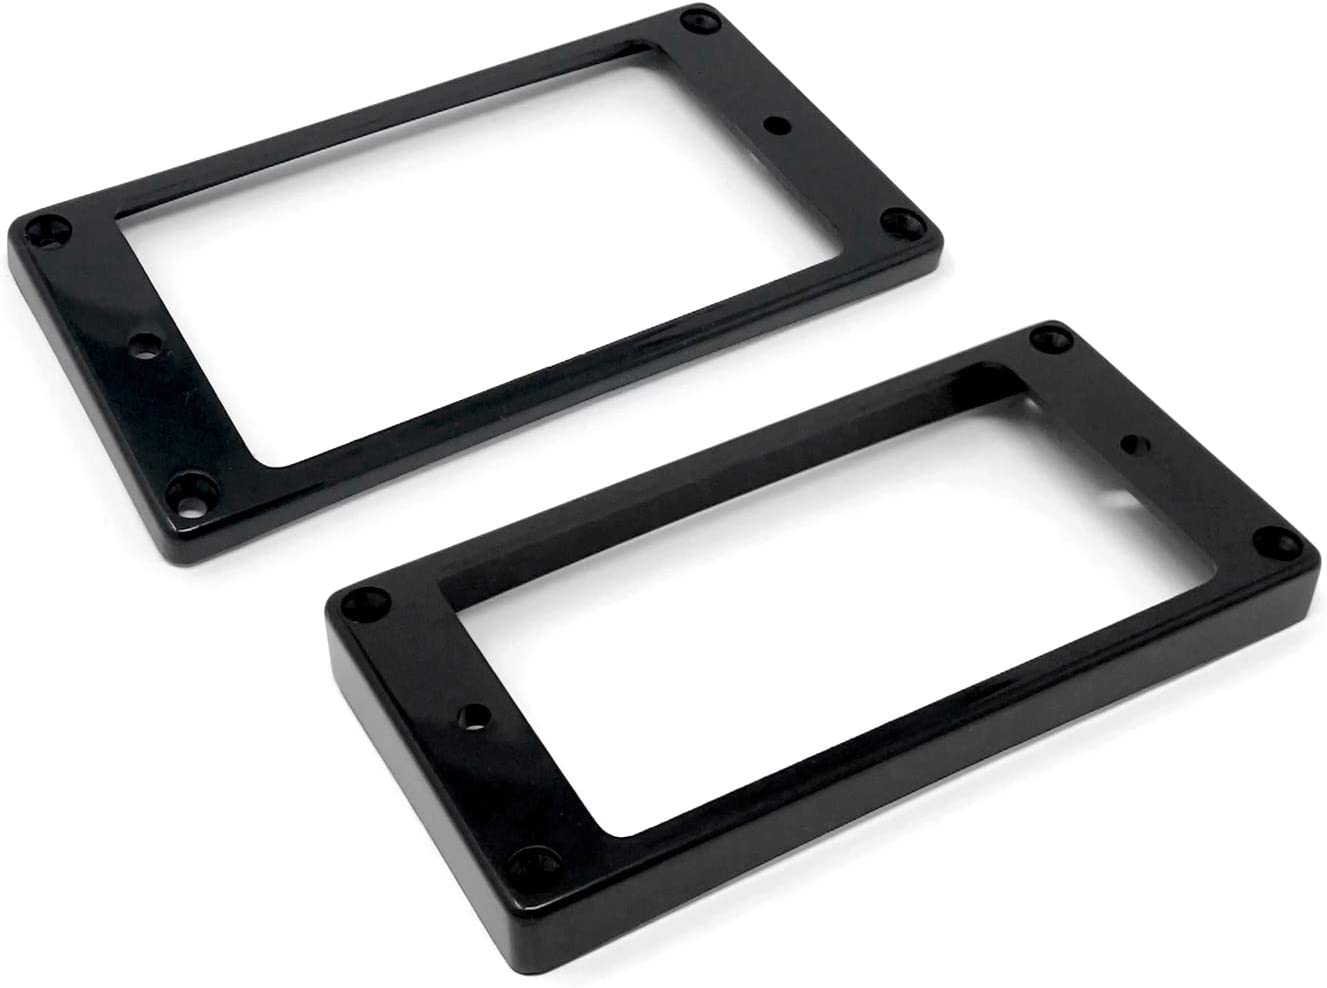 Vintage Forge Black Curved Bottom Humbucker Pickup Mounting Ring Set (Bridge & Neck) for Epiphone Guitars HR1800C-BLK